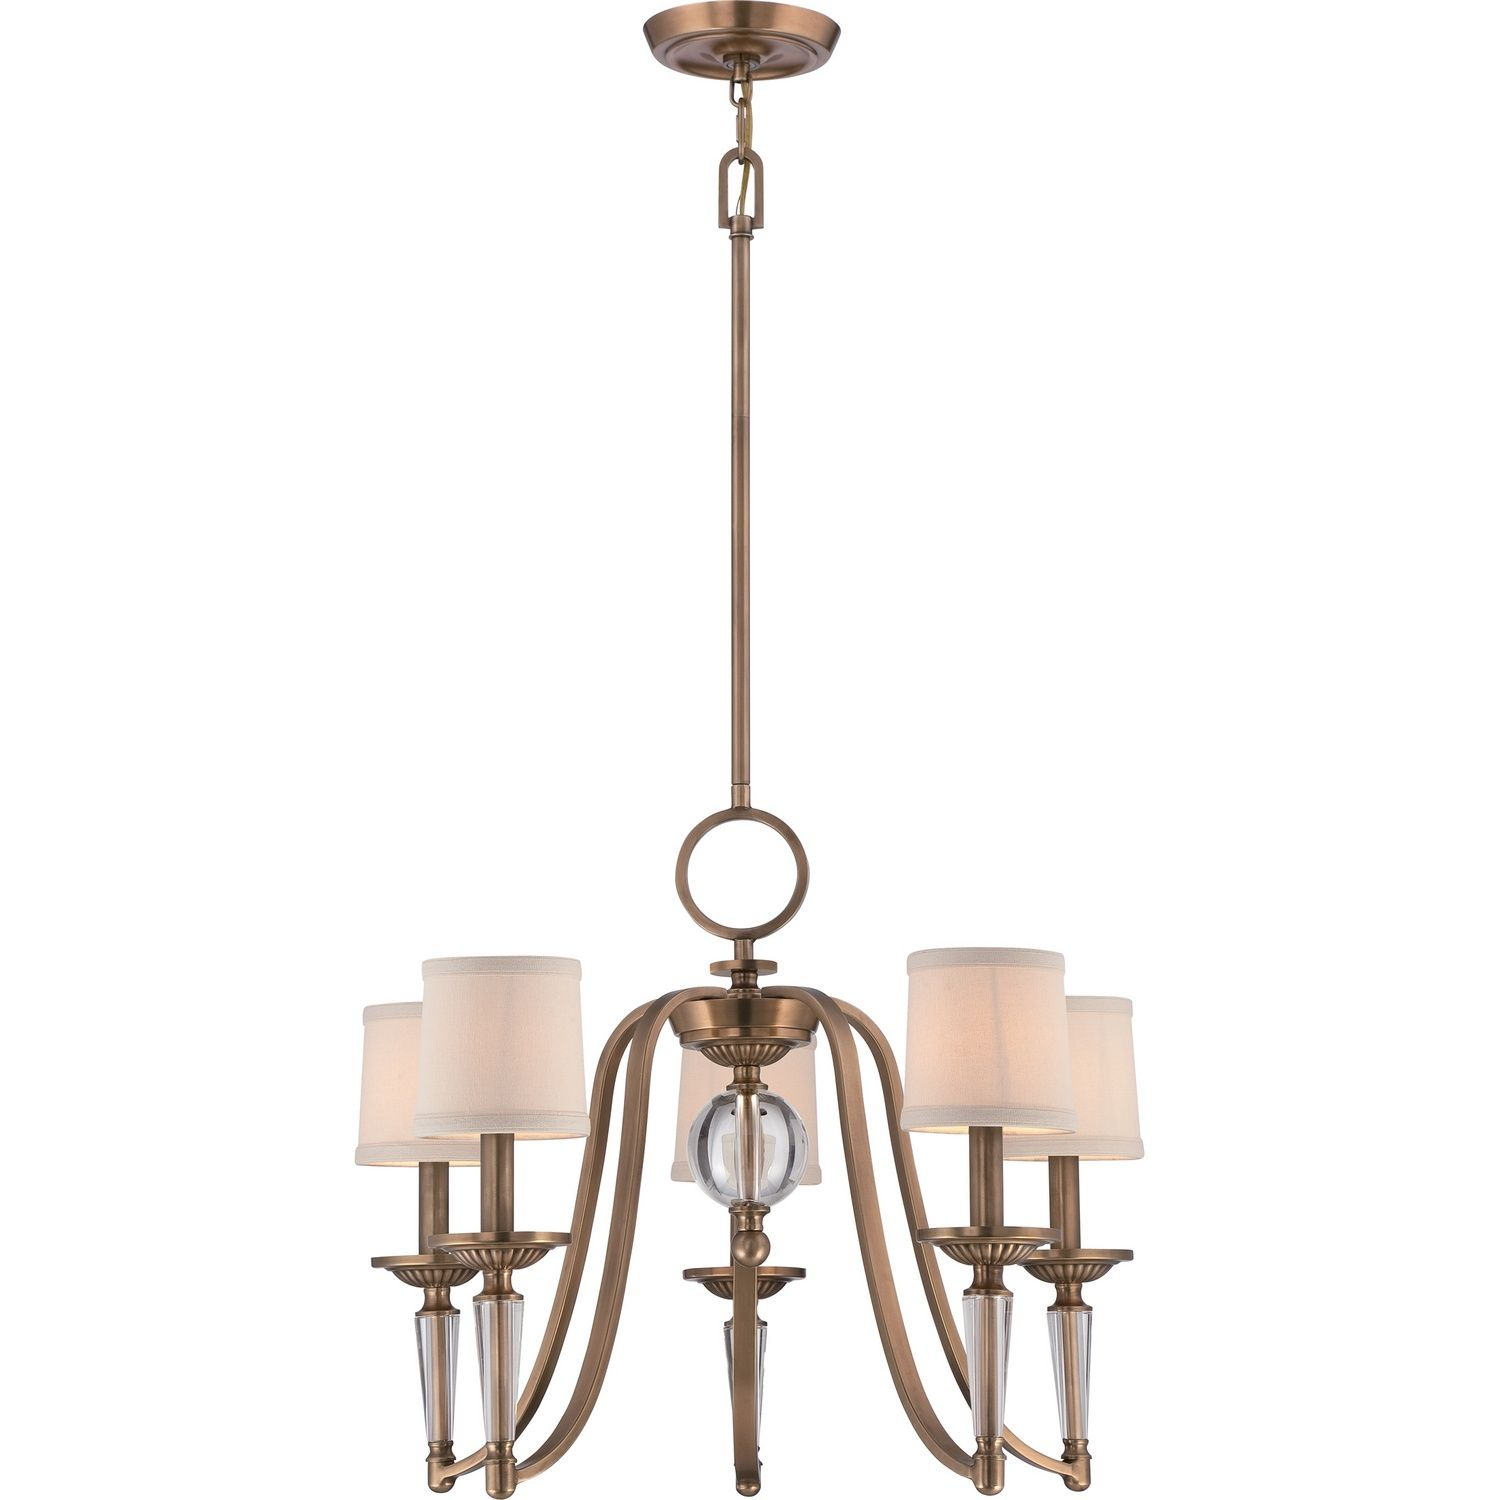 Stately and majestic the Empire is an amazing UPTOWN chandelier with rich details. The beautiful crystal accents are highlighted by the lustrous Weathered Brass finished features on the base and candle holders. The petite shades are crafted in off white linen that softens the glow of light.